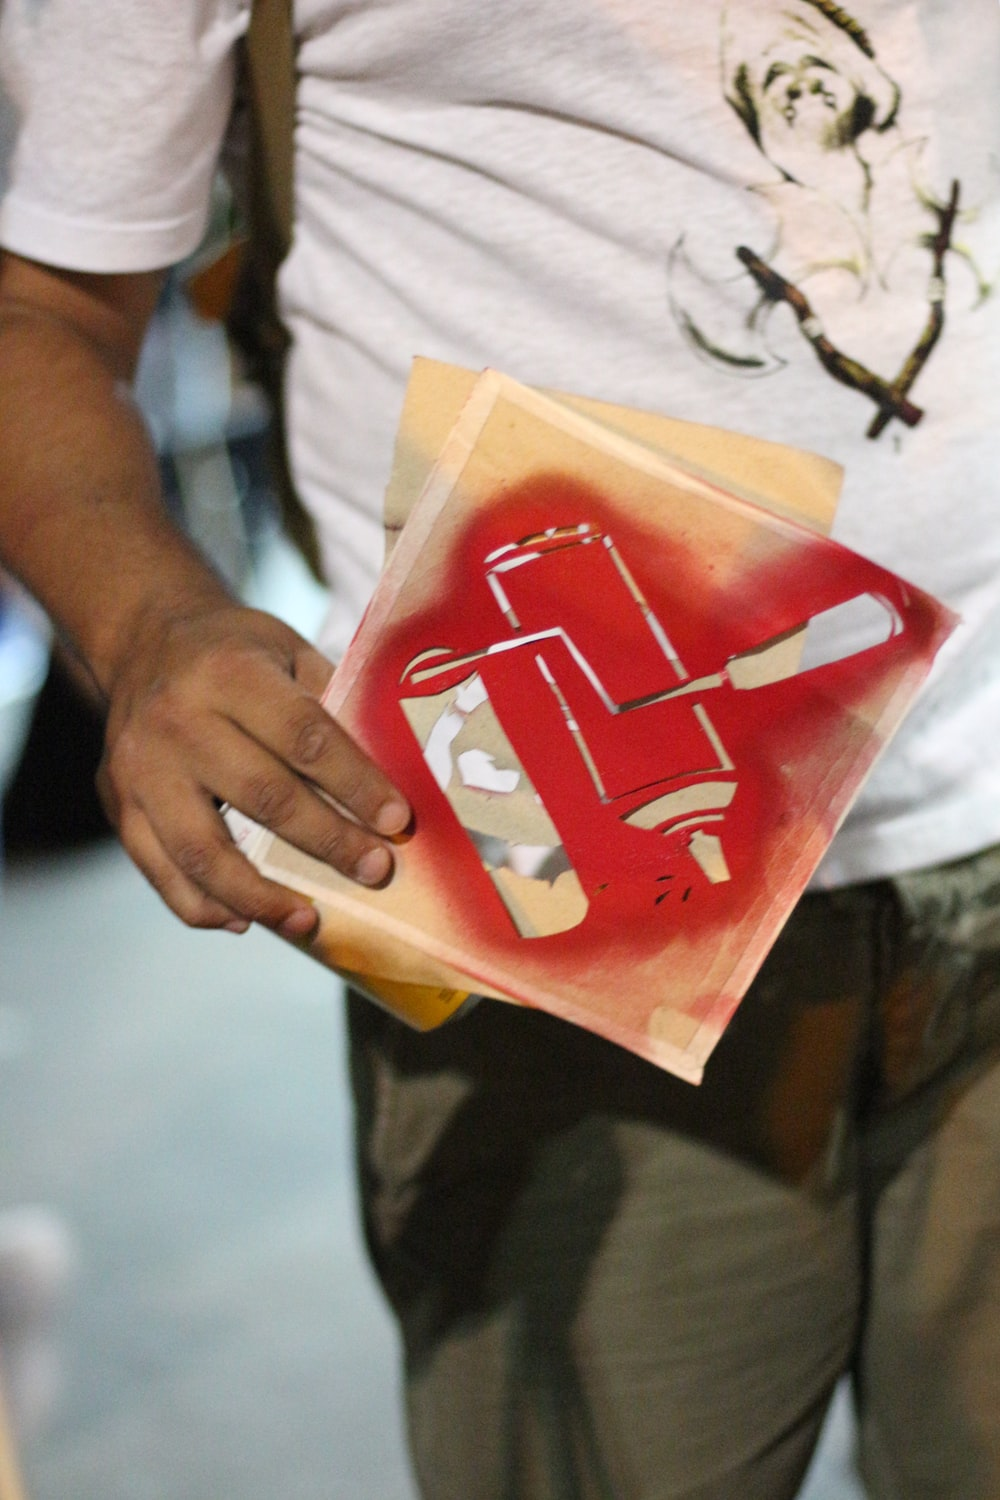 person holding white and red plastic pack